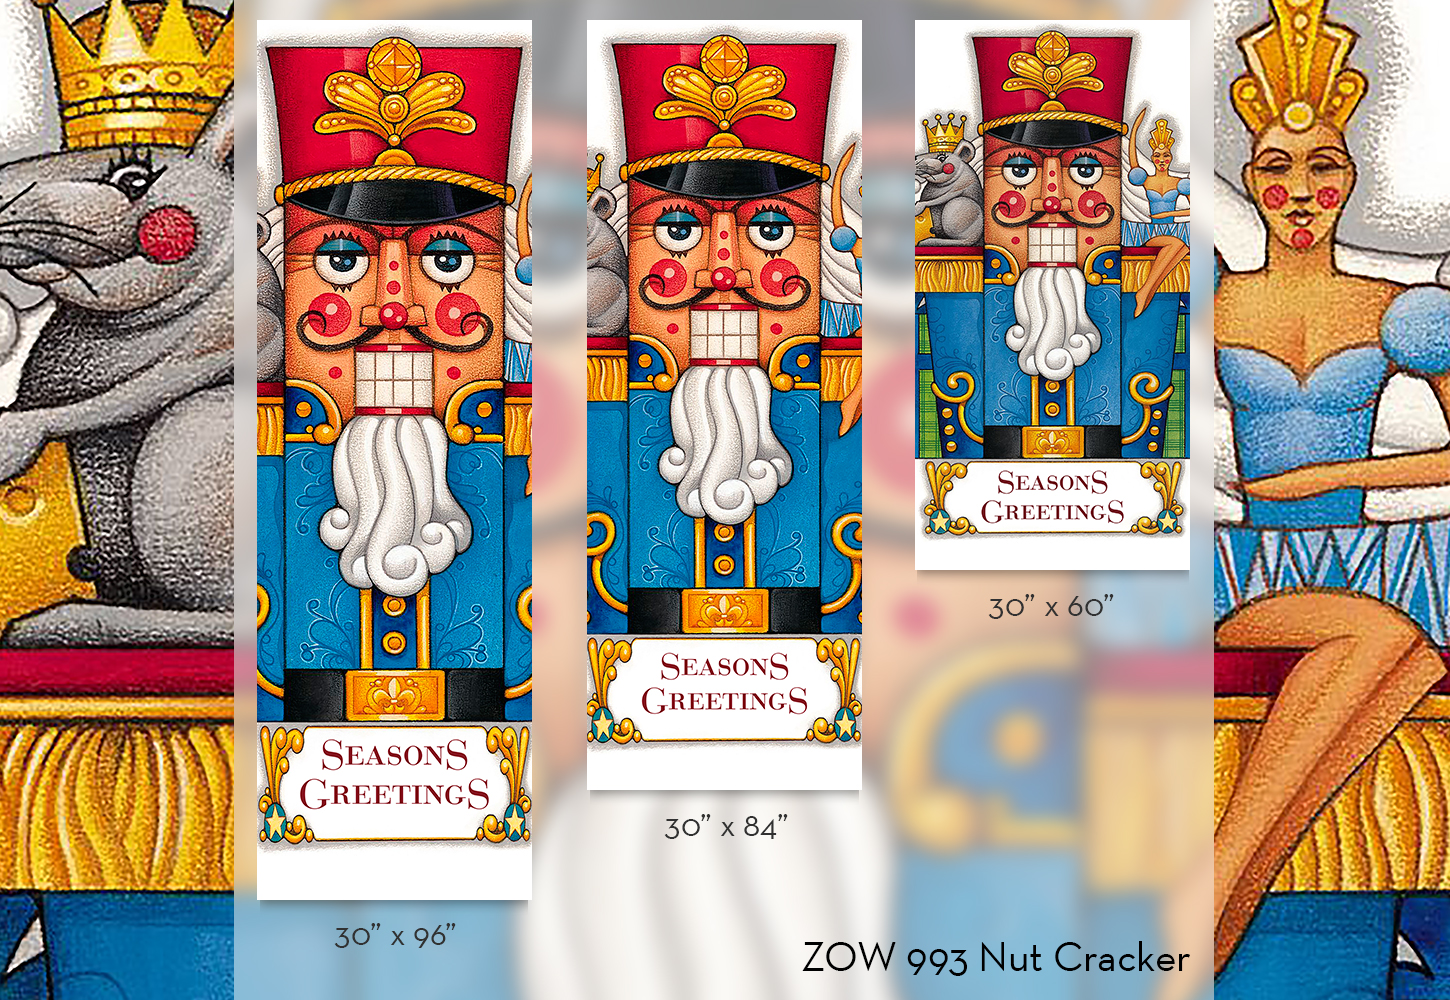 ZOW 993 Nut Cracker